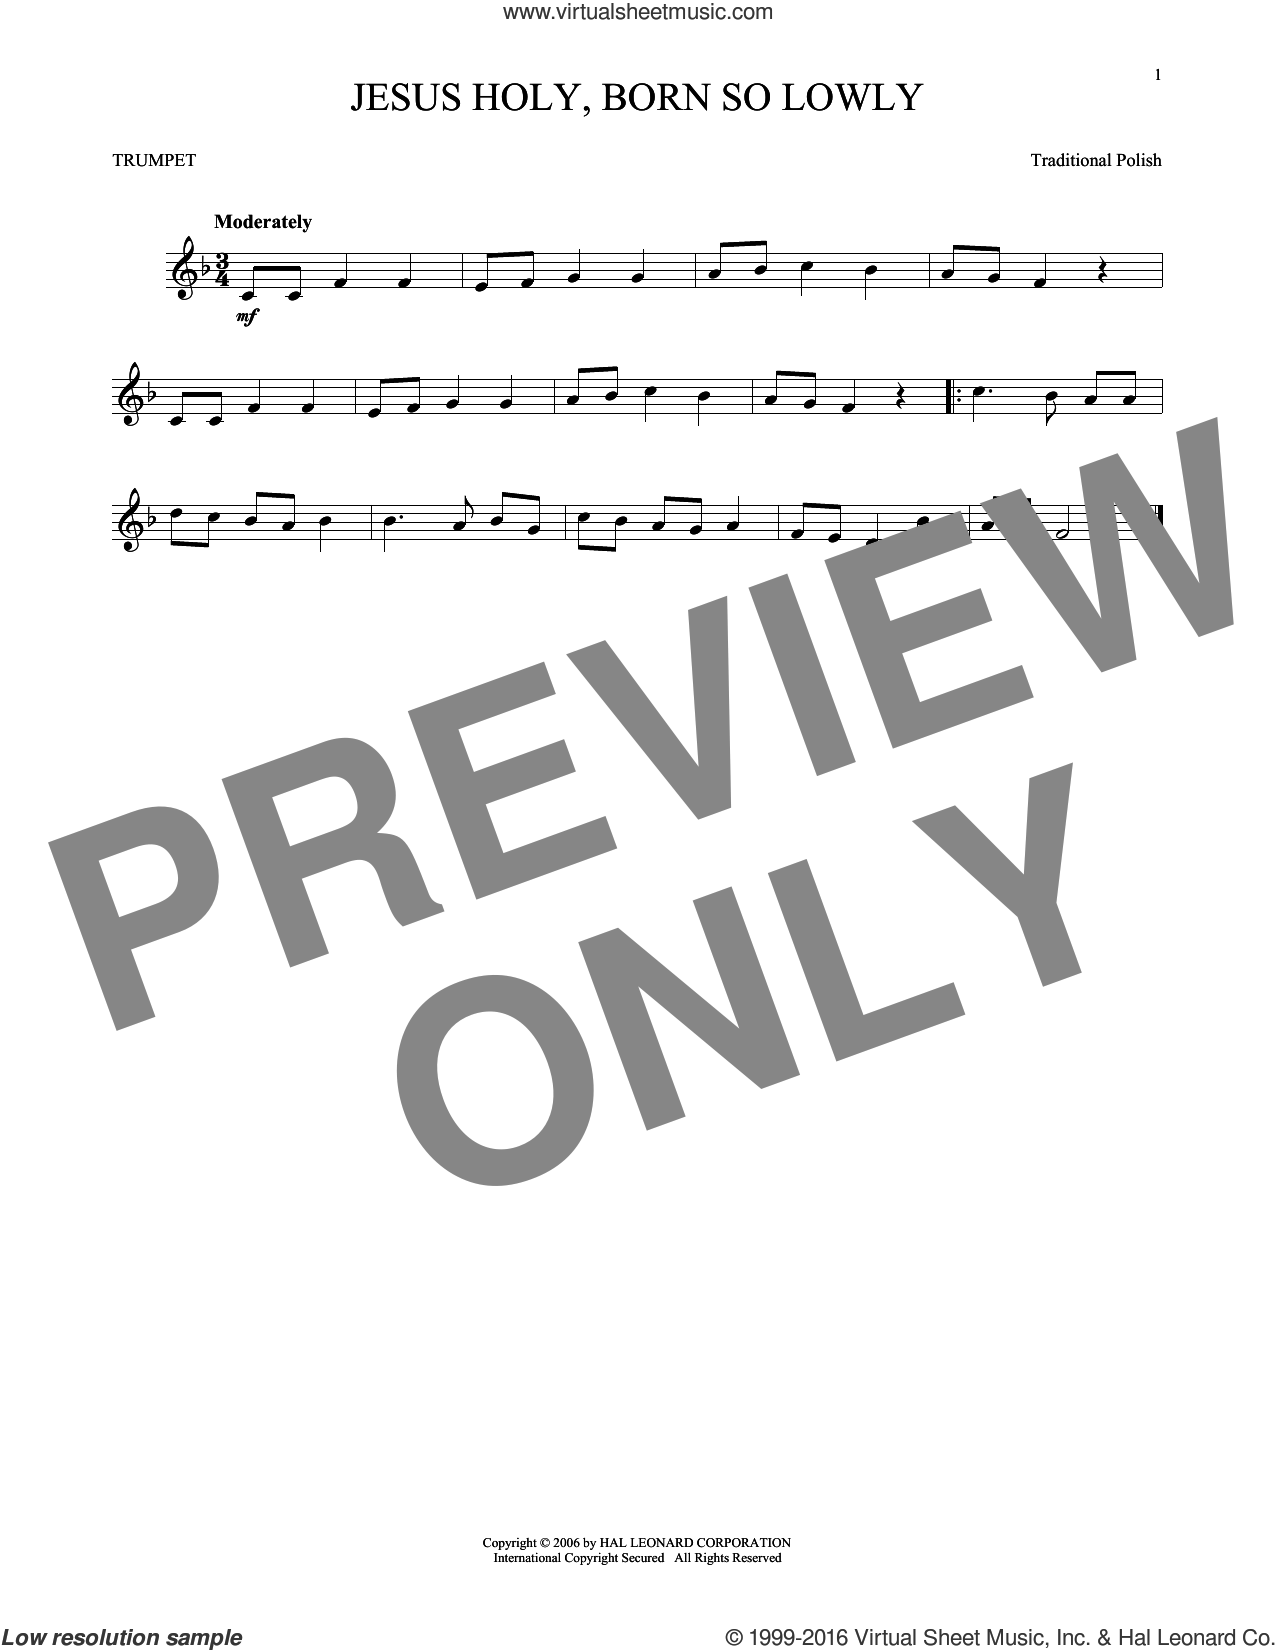 Jesus Holy, Born So Lowly sheet music for trumpet solo, intermediate skill level